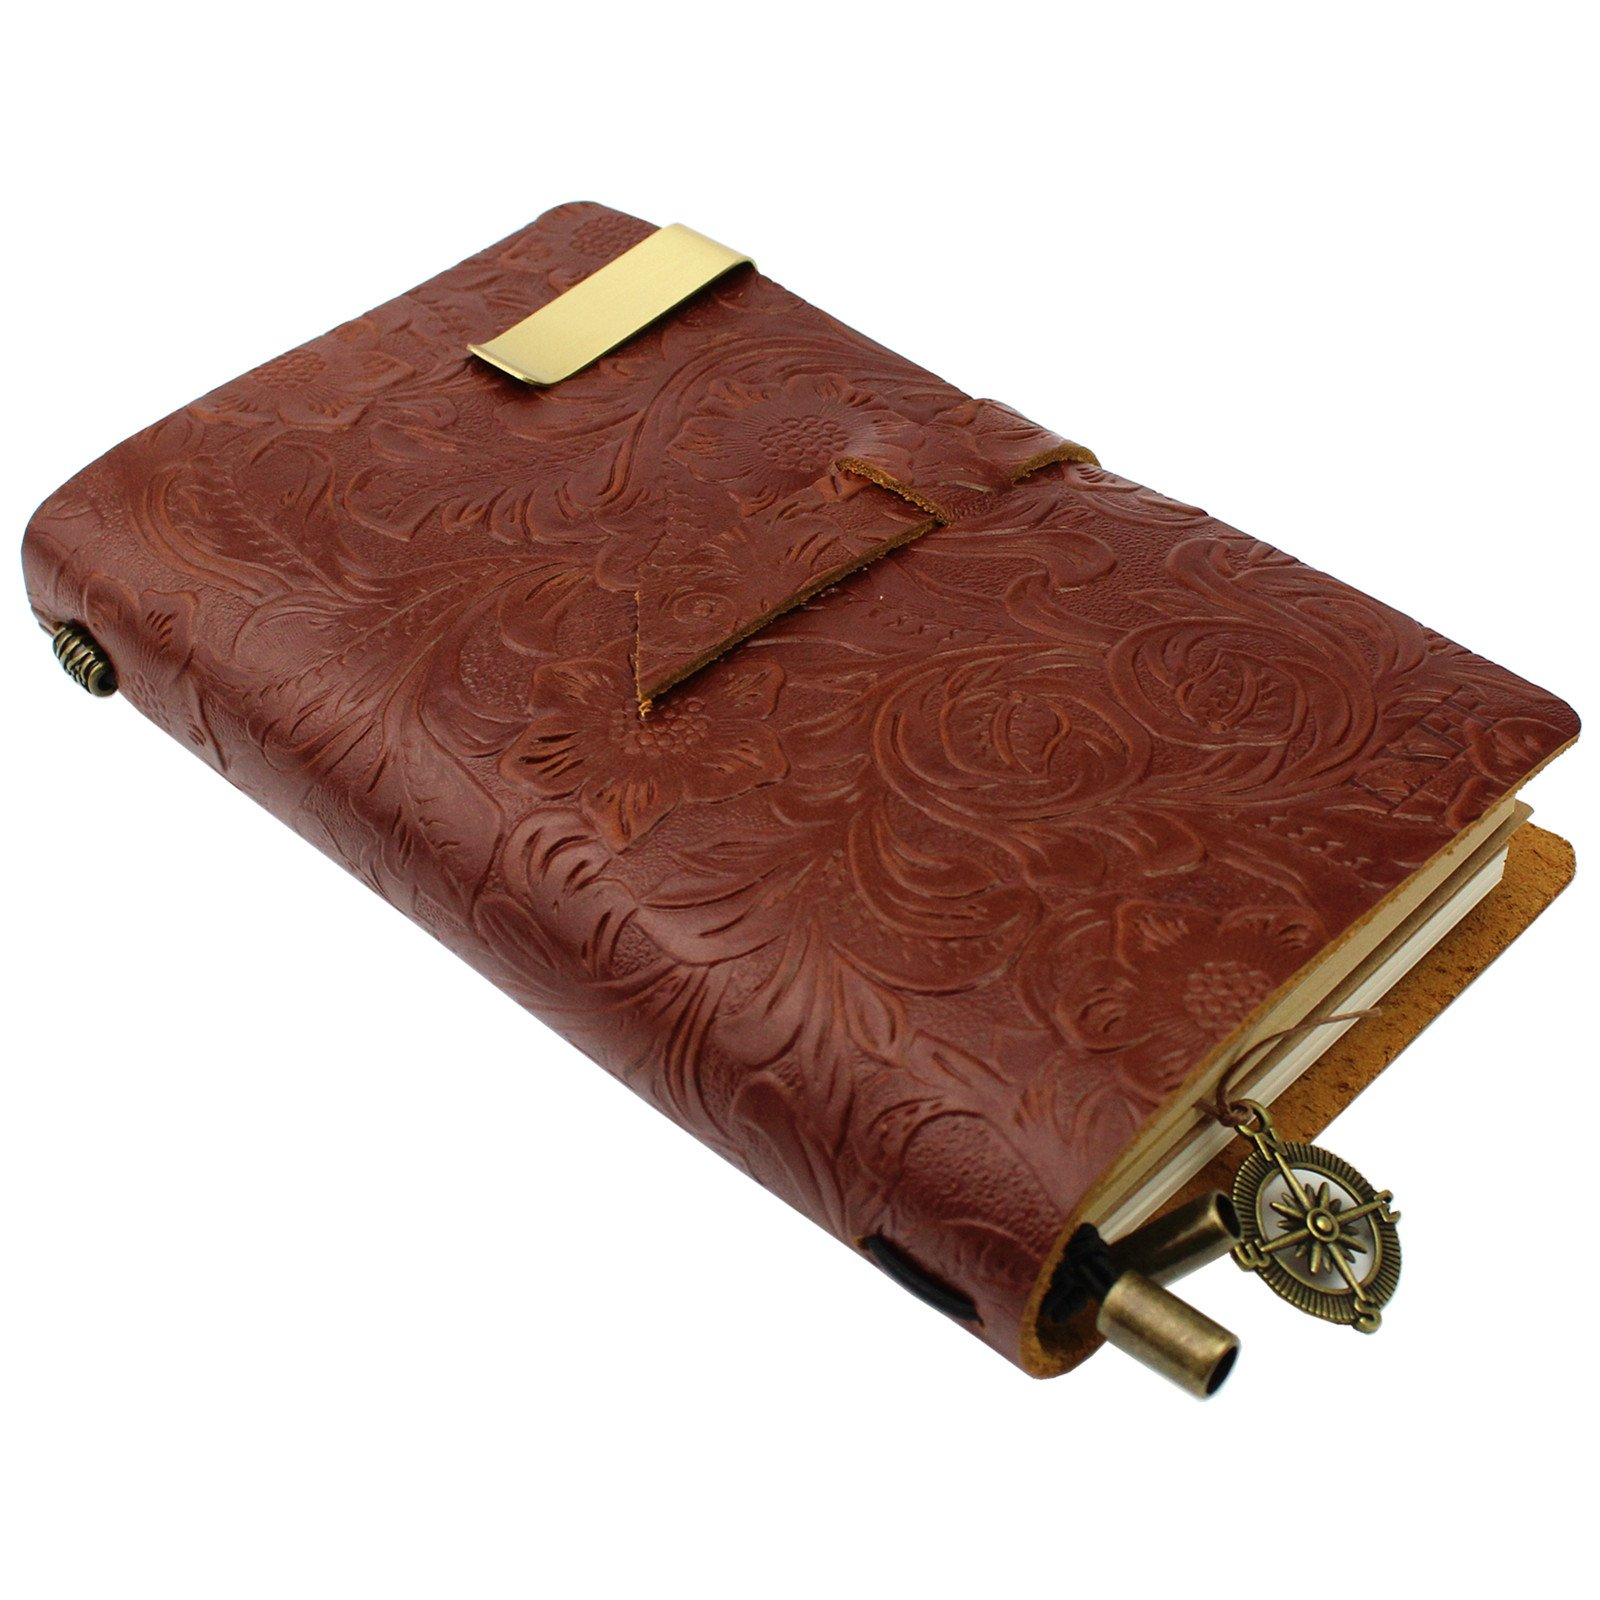 LXFF Handmade Leather Journal Notebook Diary Refillable Notebooks (180 Pages) - 7 x 4.4 Inches - Perfect Gift for Women Brown Flower Embossed